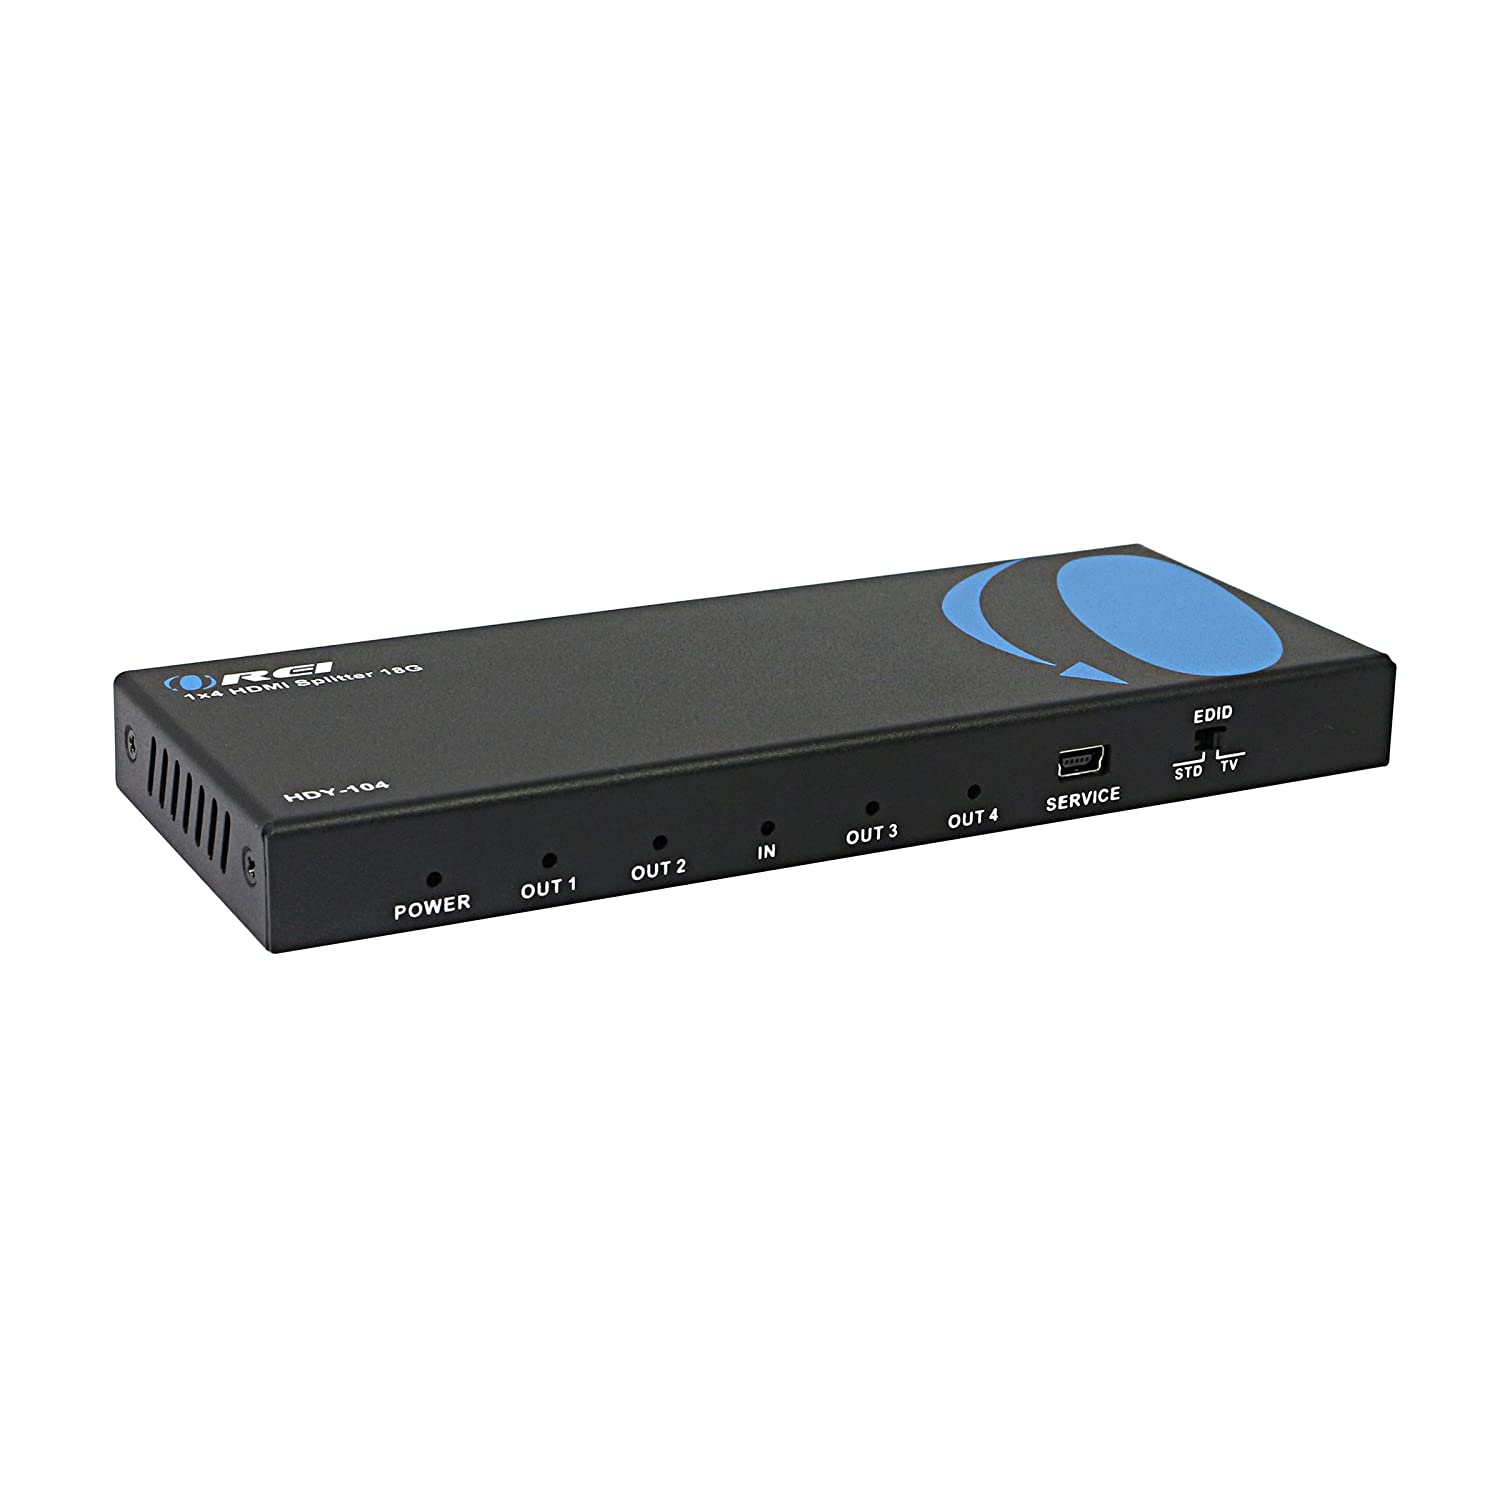 Orei 1x4 2 0 HDMI Splitter 4 Ports with Full Ultra HDCP 2 2, 4K at 60Hz &  3D Supports EDID Control - HDY-104